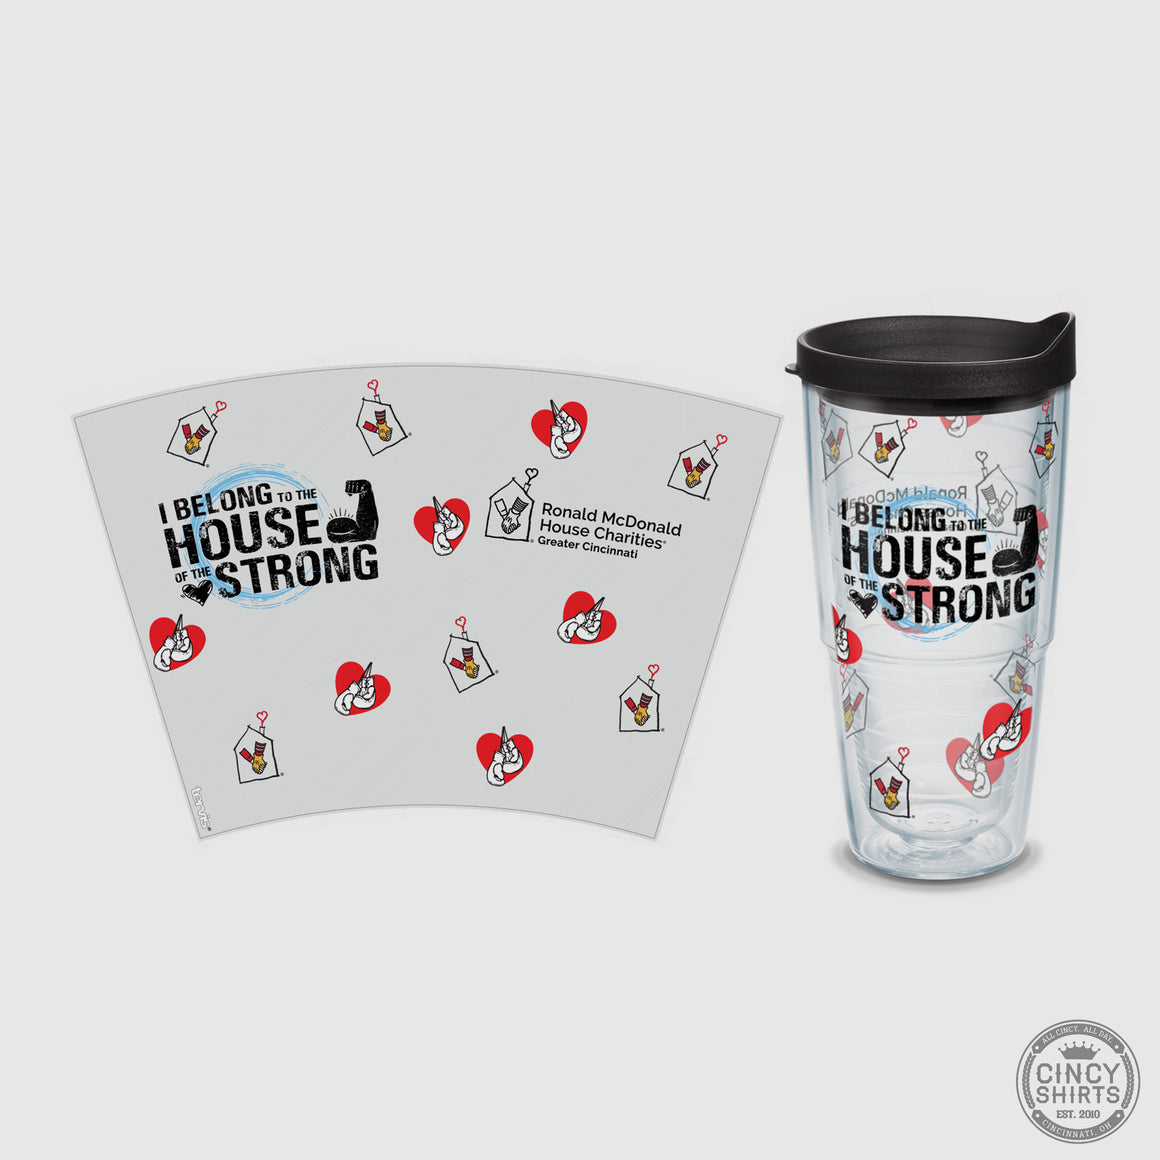 Ronald McDonald House Charities Tervis Tumbler - Cincy Shirts